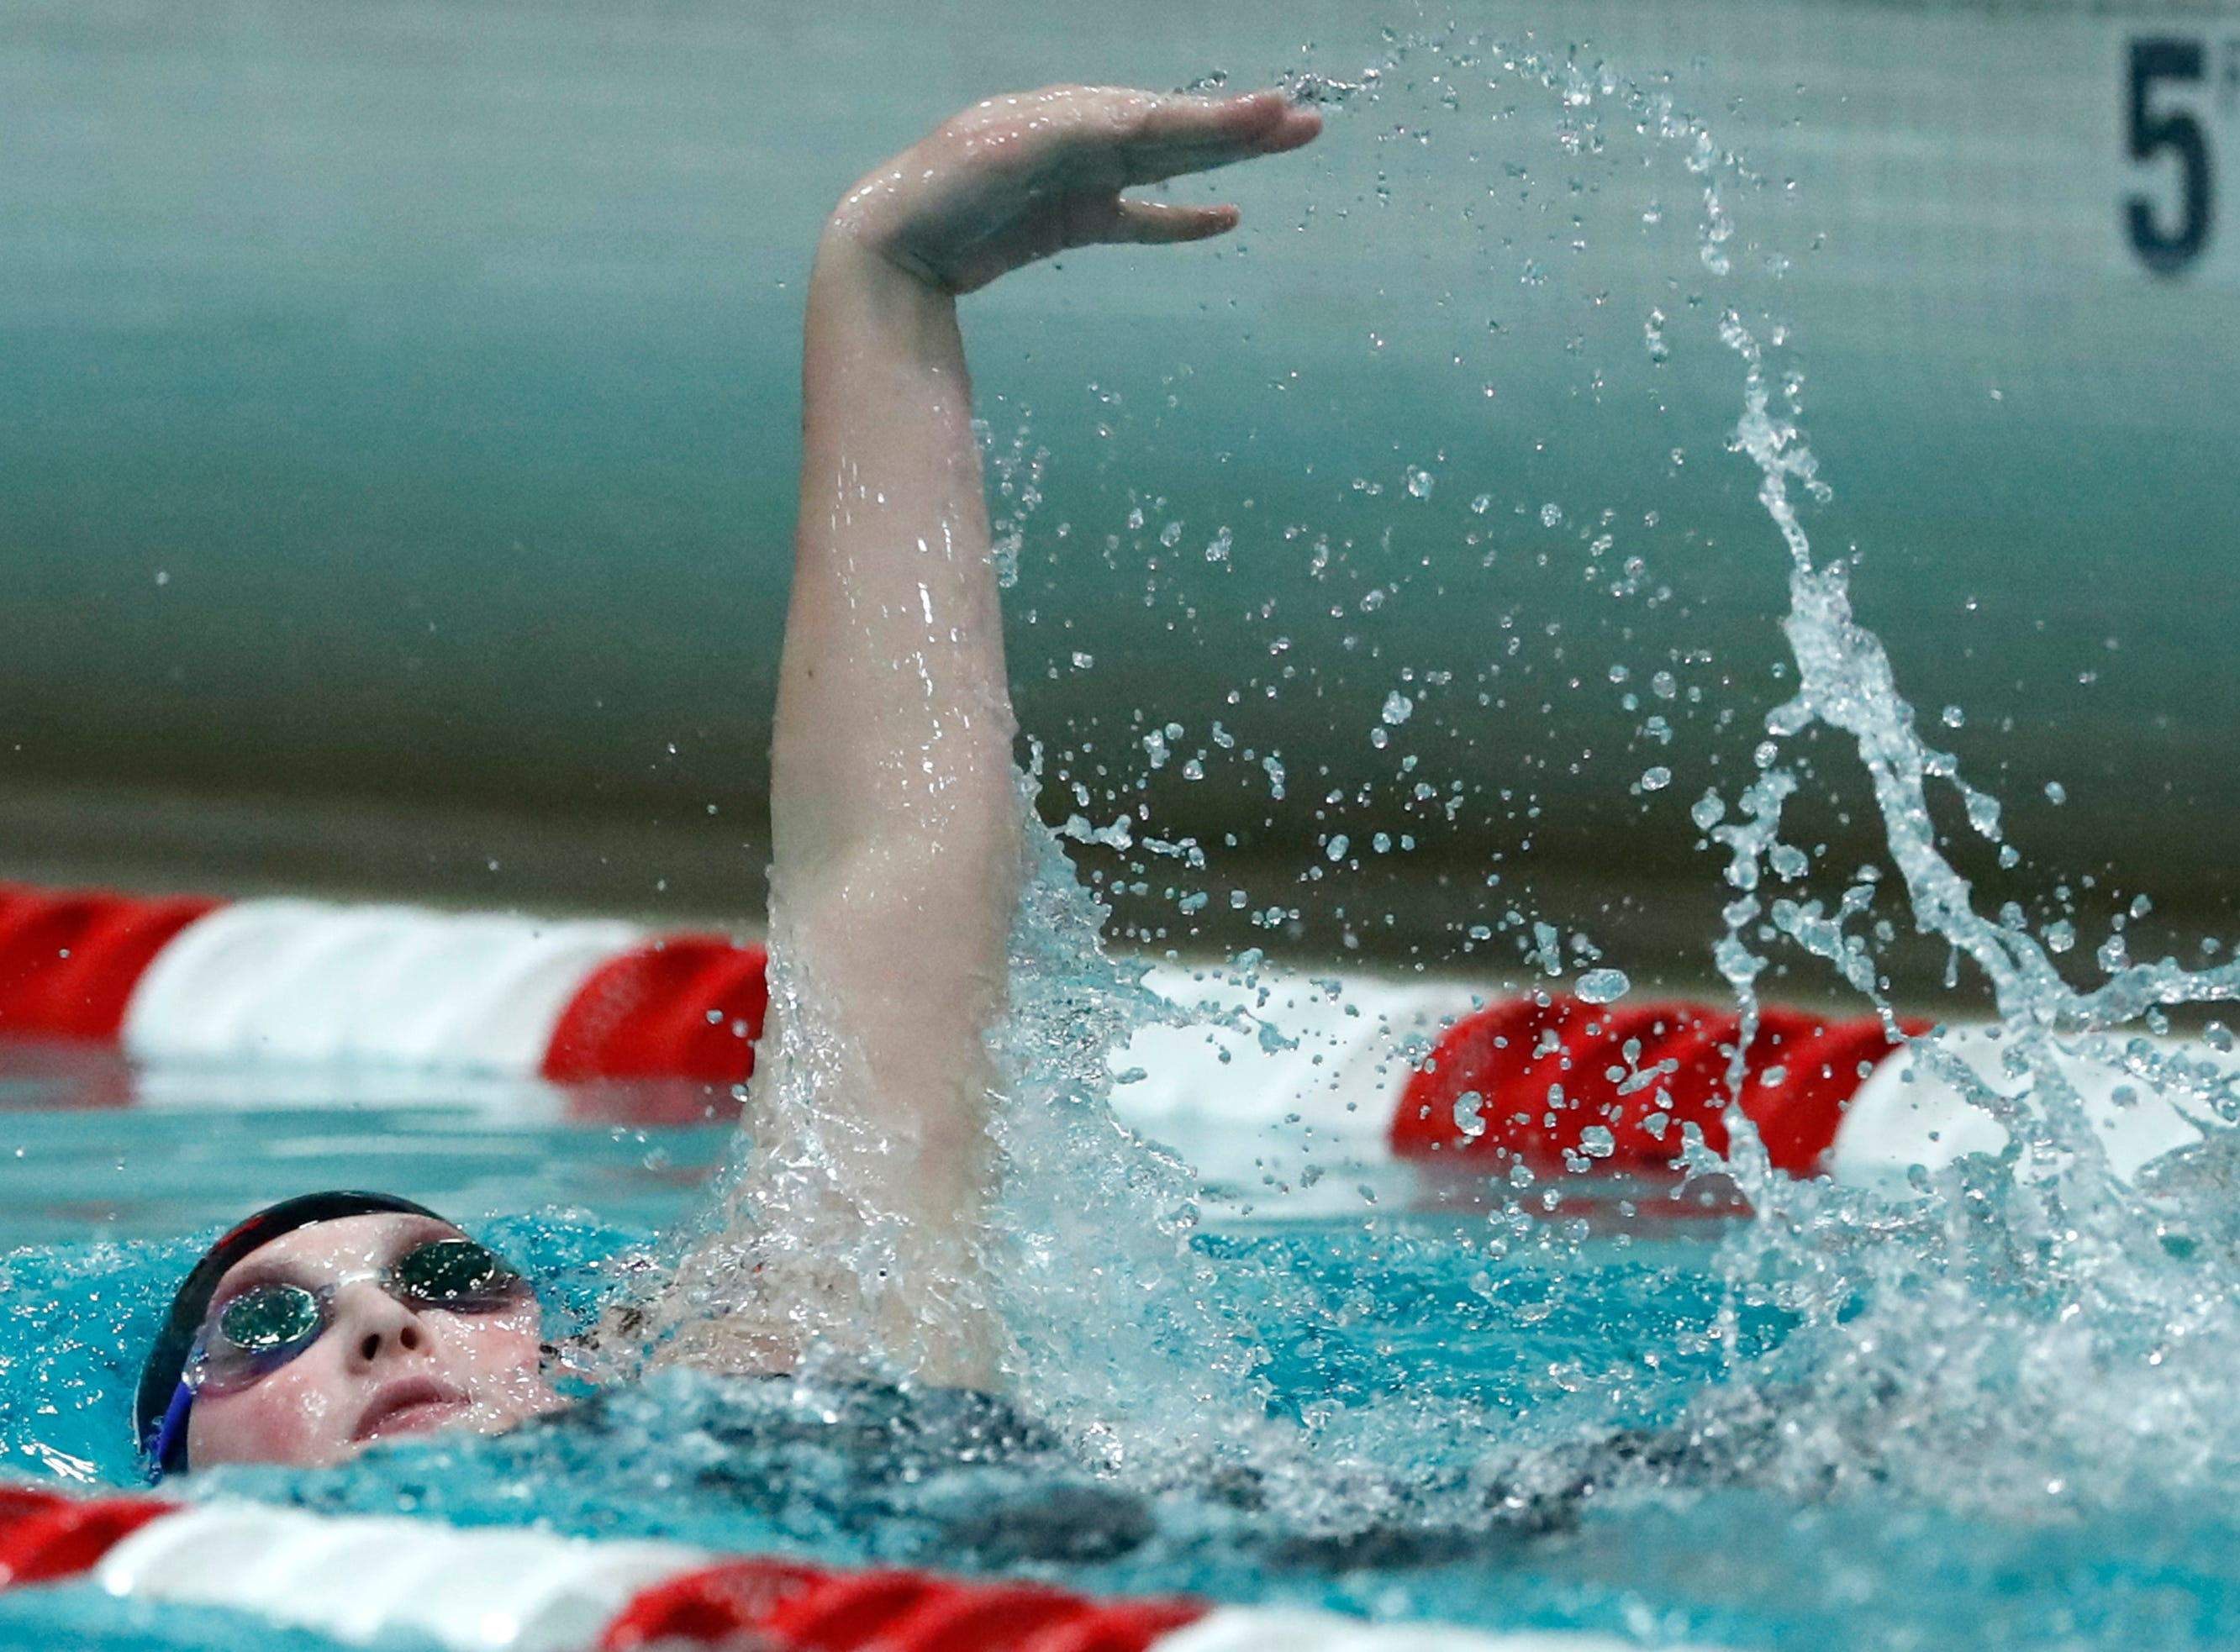 Sturgeon Bay Co-op's Abi Schauske races in the 200 yard individual medley during the WIAA Division 2 State Swimming and Diving meet Friday, Nov. 9, 2018, at the UW Natatorium in Madison, Wis.Danny Damiani/USA TODAY NETWORK-Wisconsin